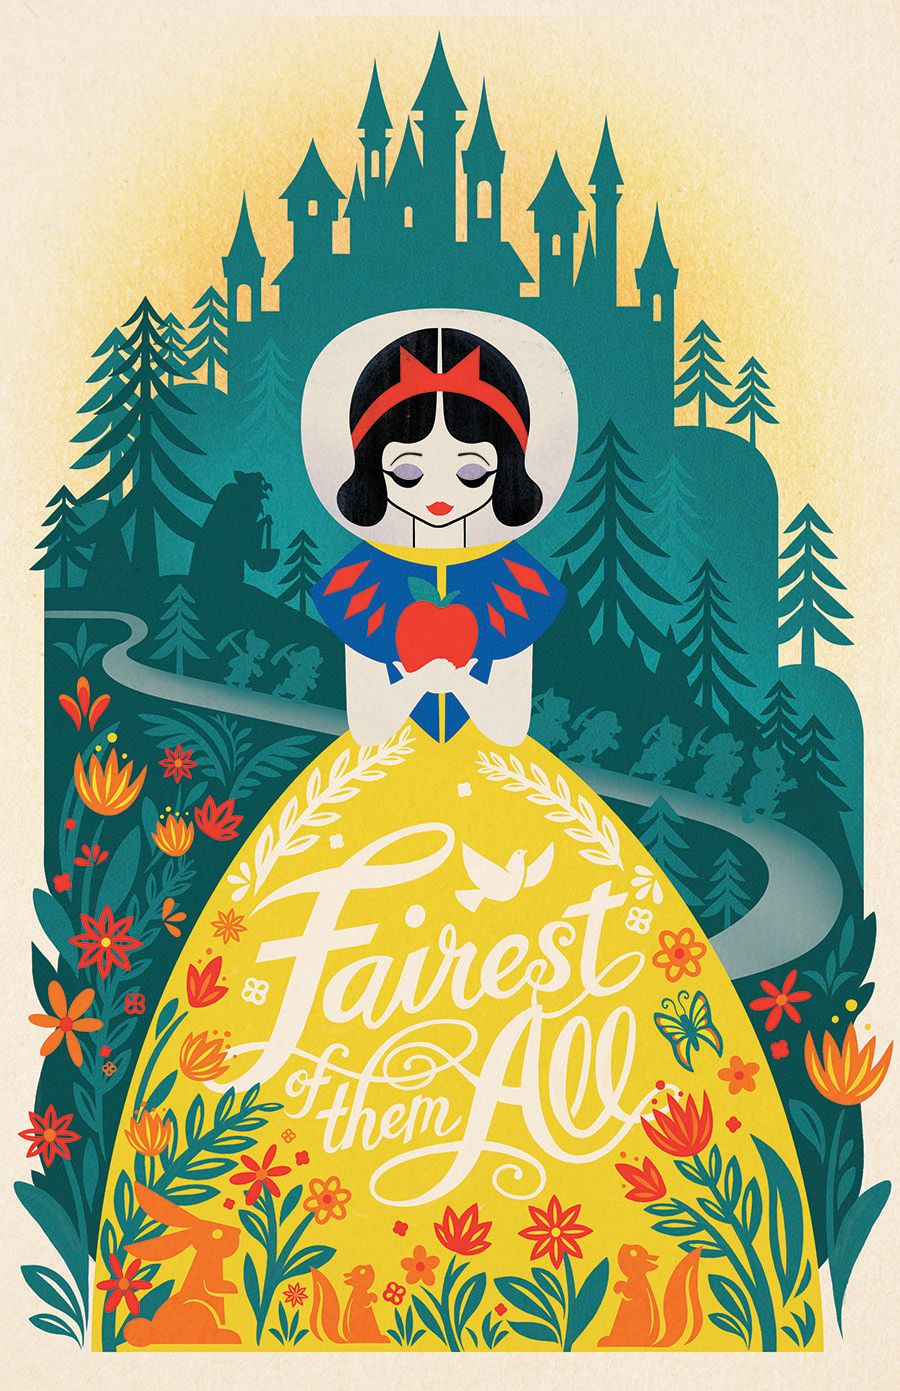 My illustration for Disney Store's The Art of Snow White! -Stacey Aoyama #snowwhite